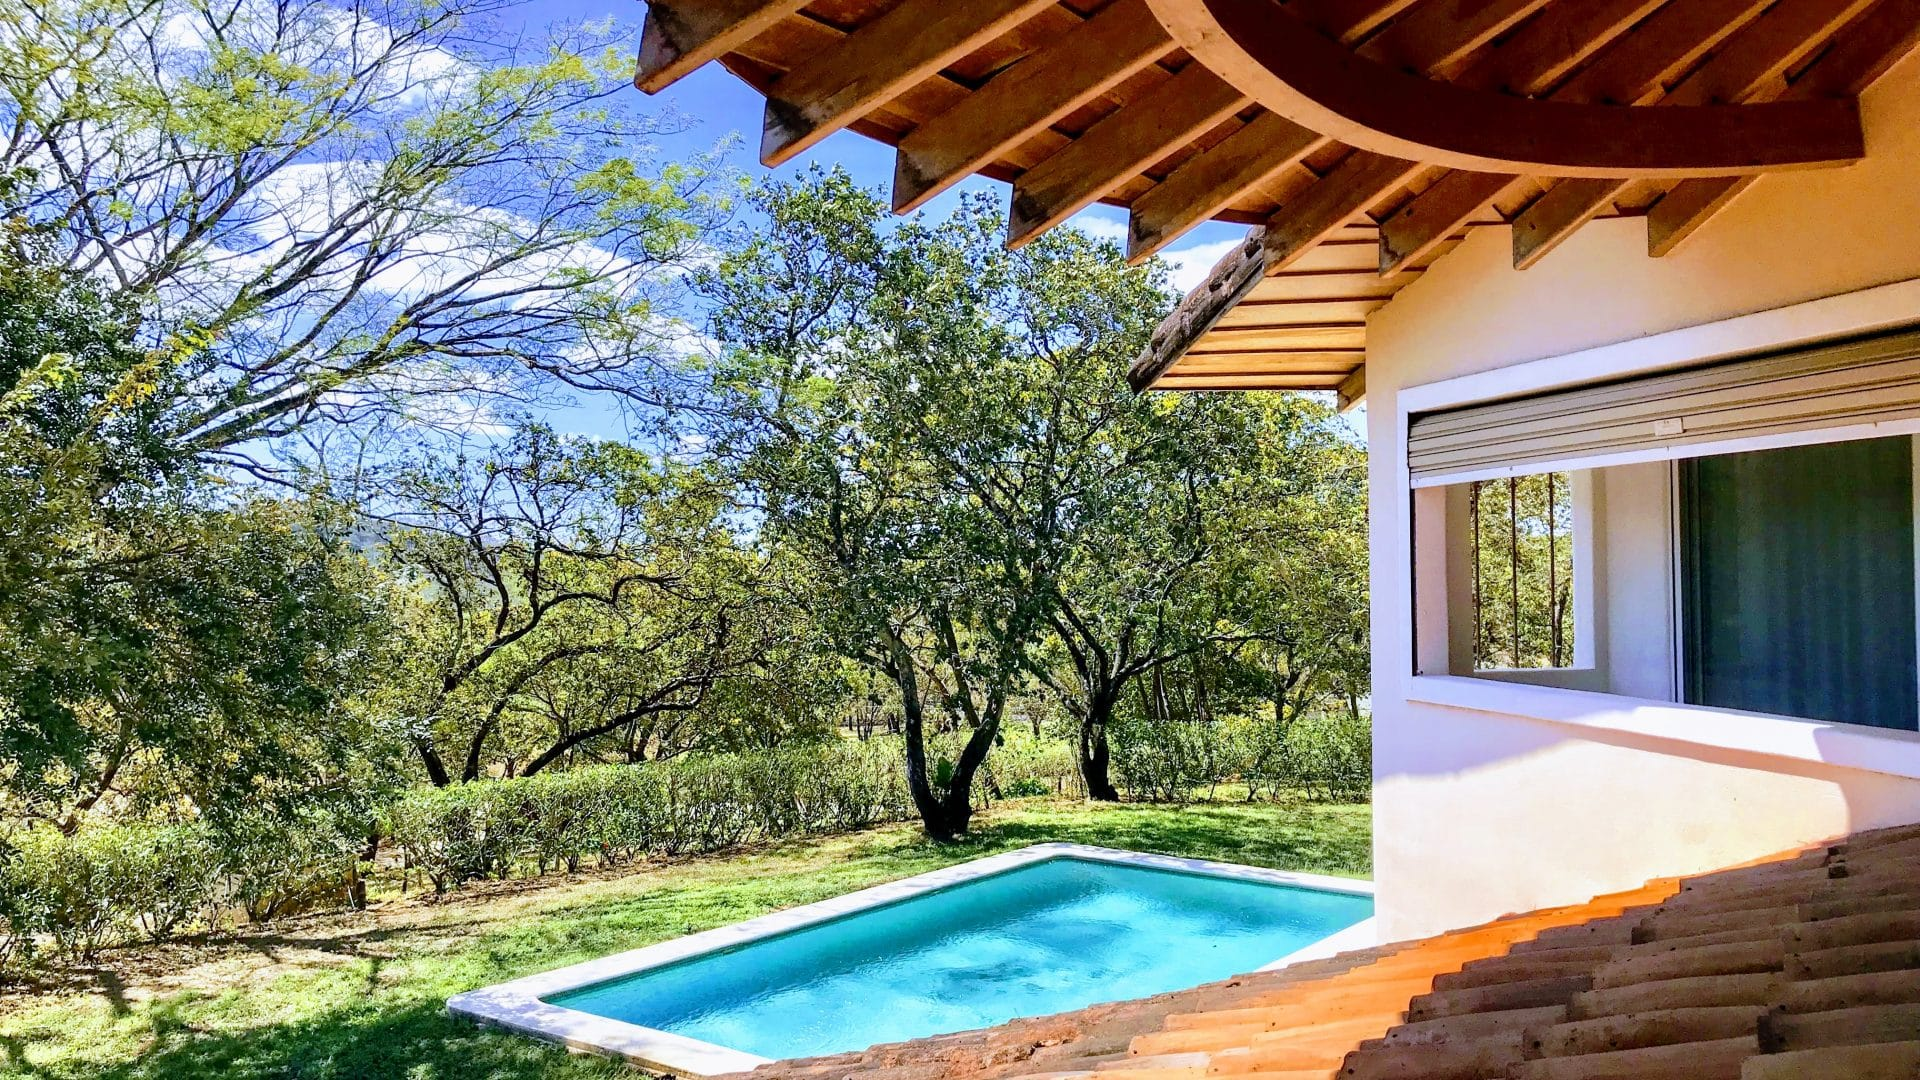 Mediterranean Family House with Pool close to Tamarindo. Now Reduced Price!